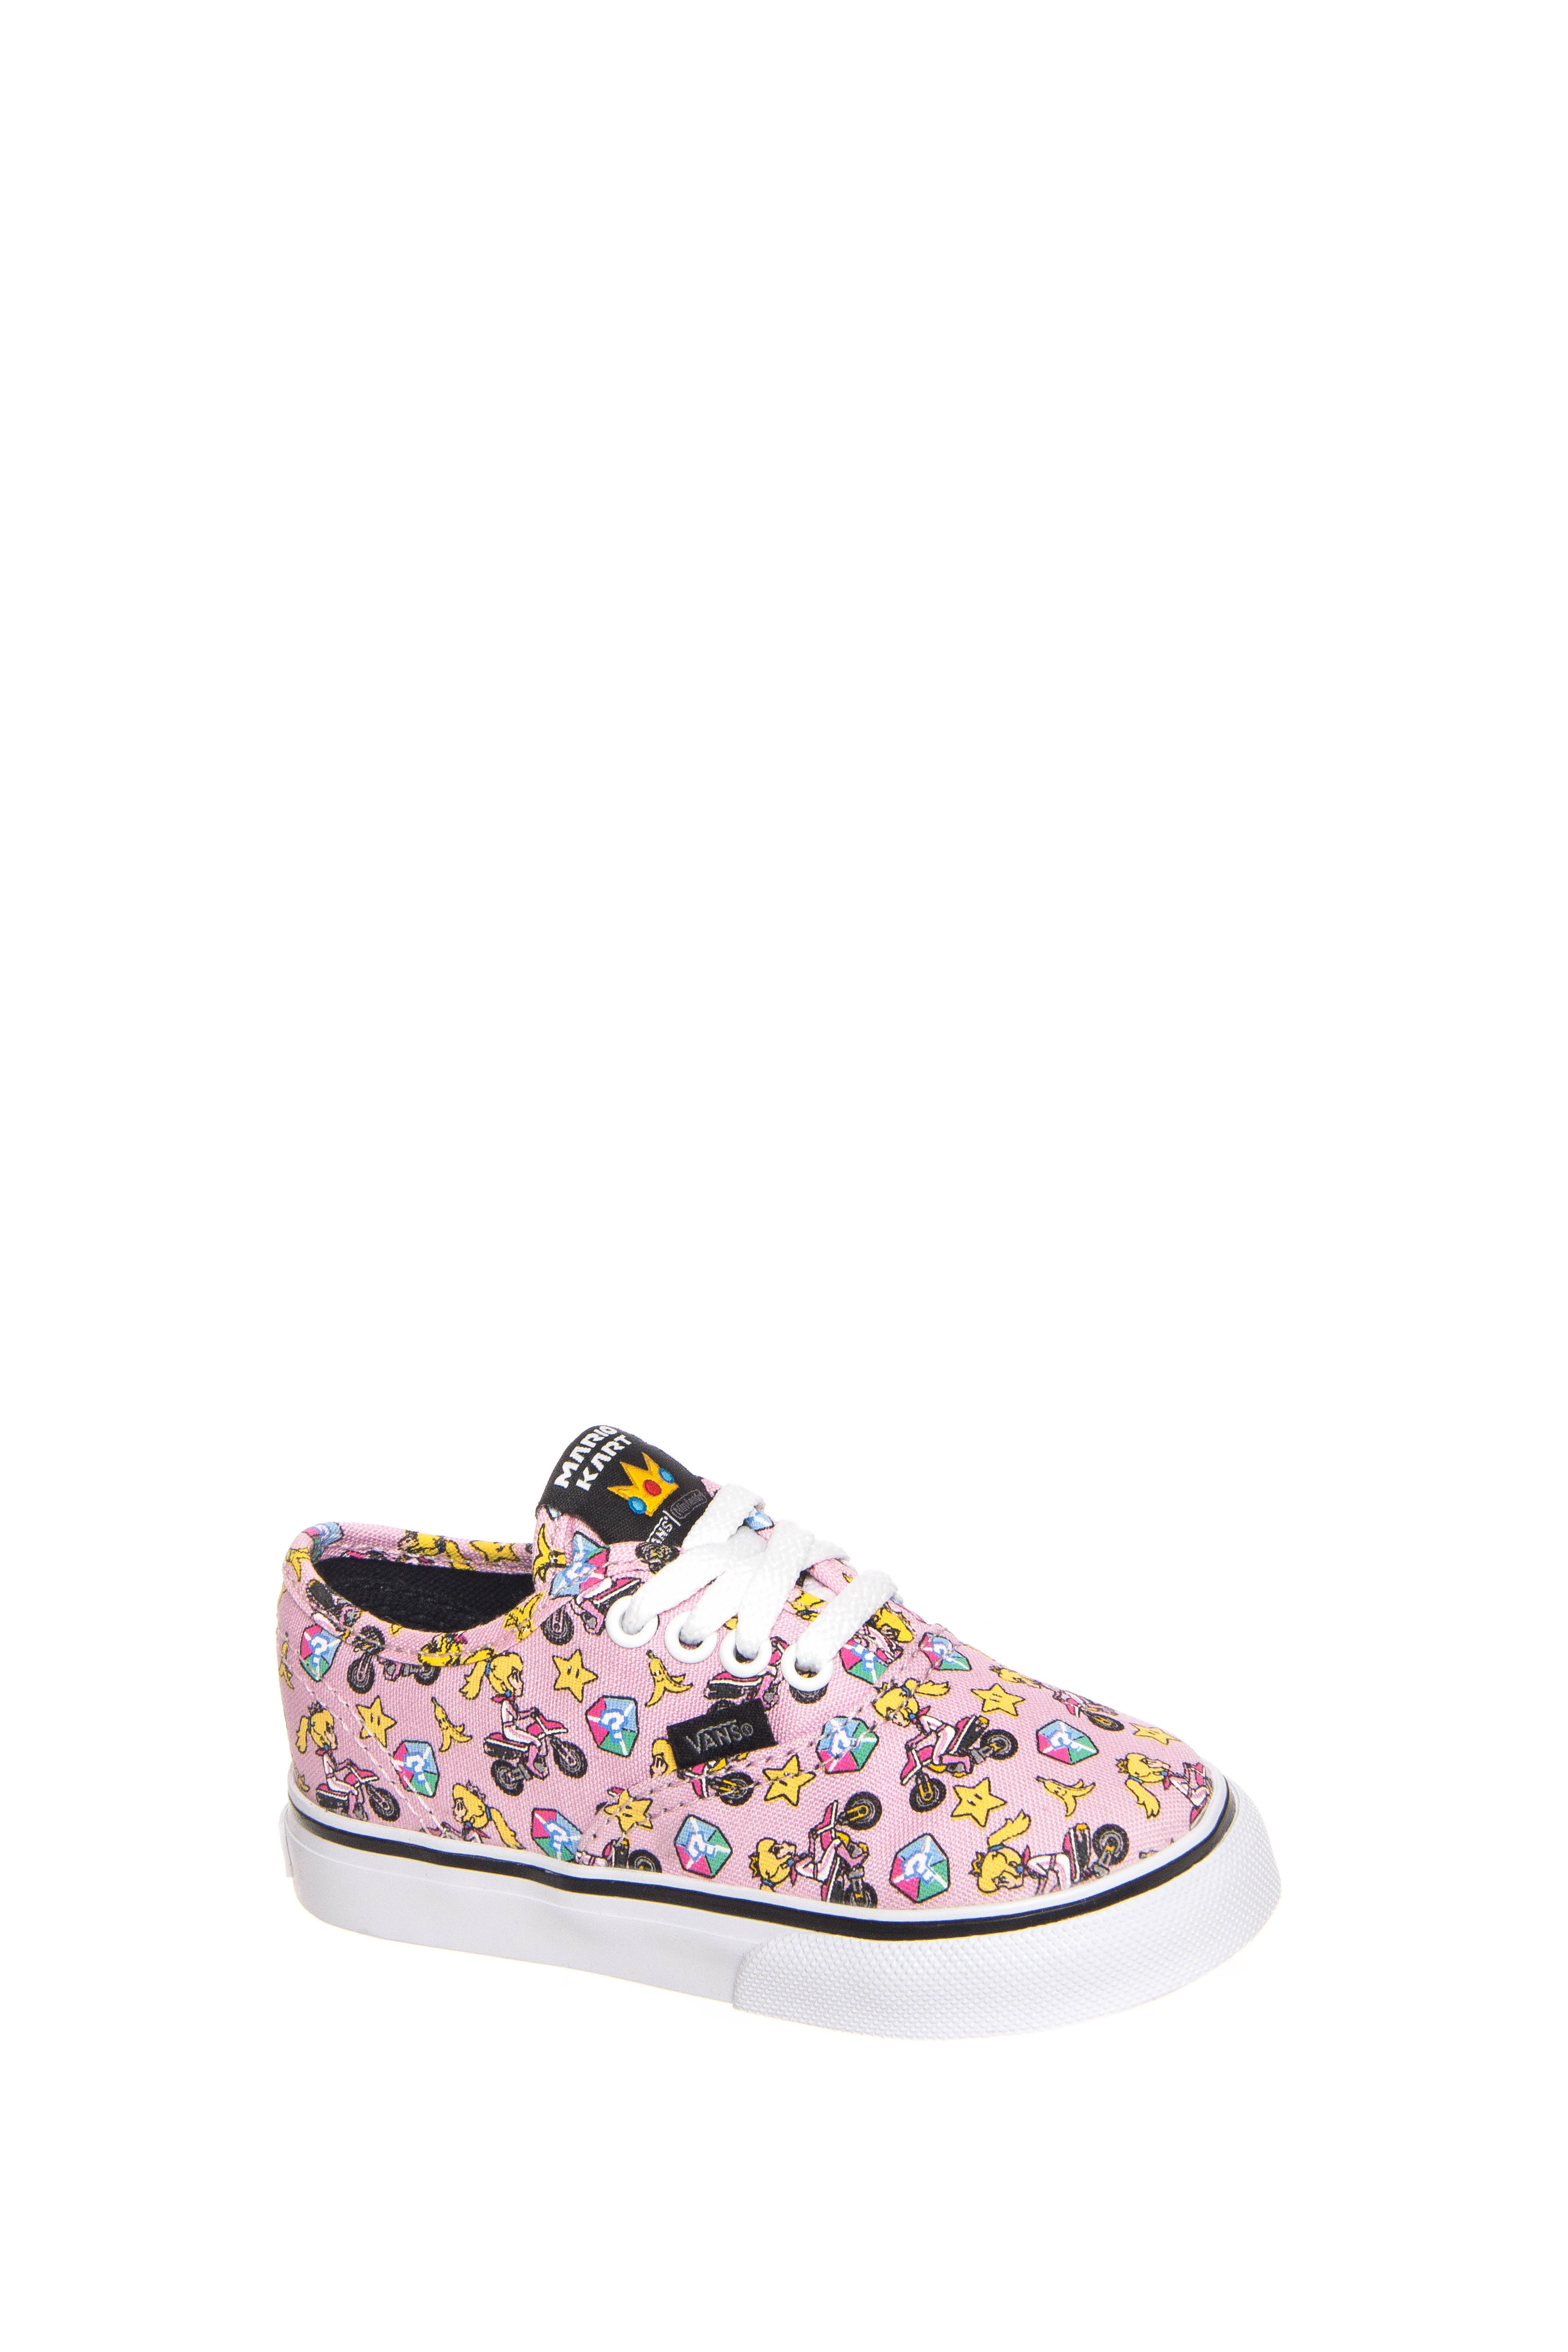 Vans Toddler's Authentic Low Top Sneakers - Princess Peach / Motorcycle